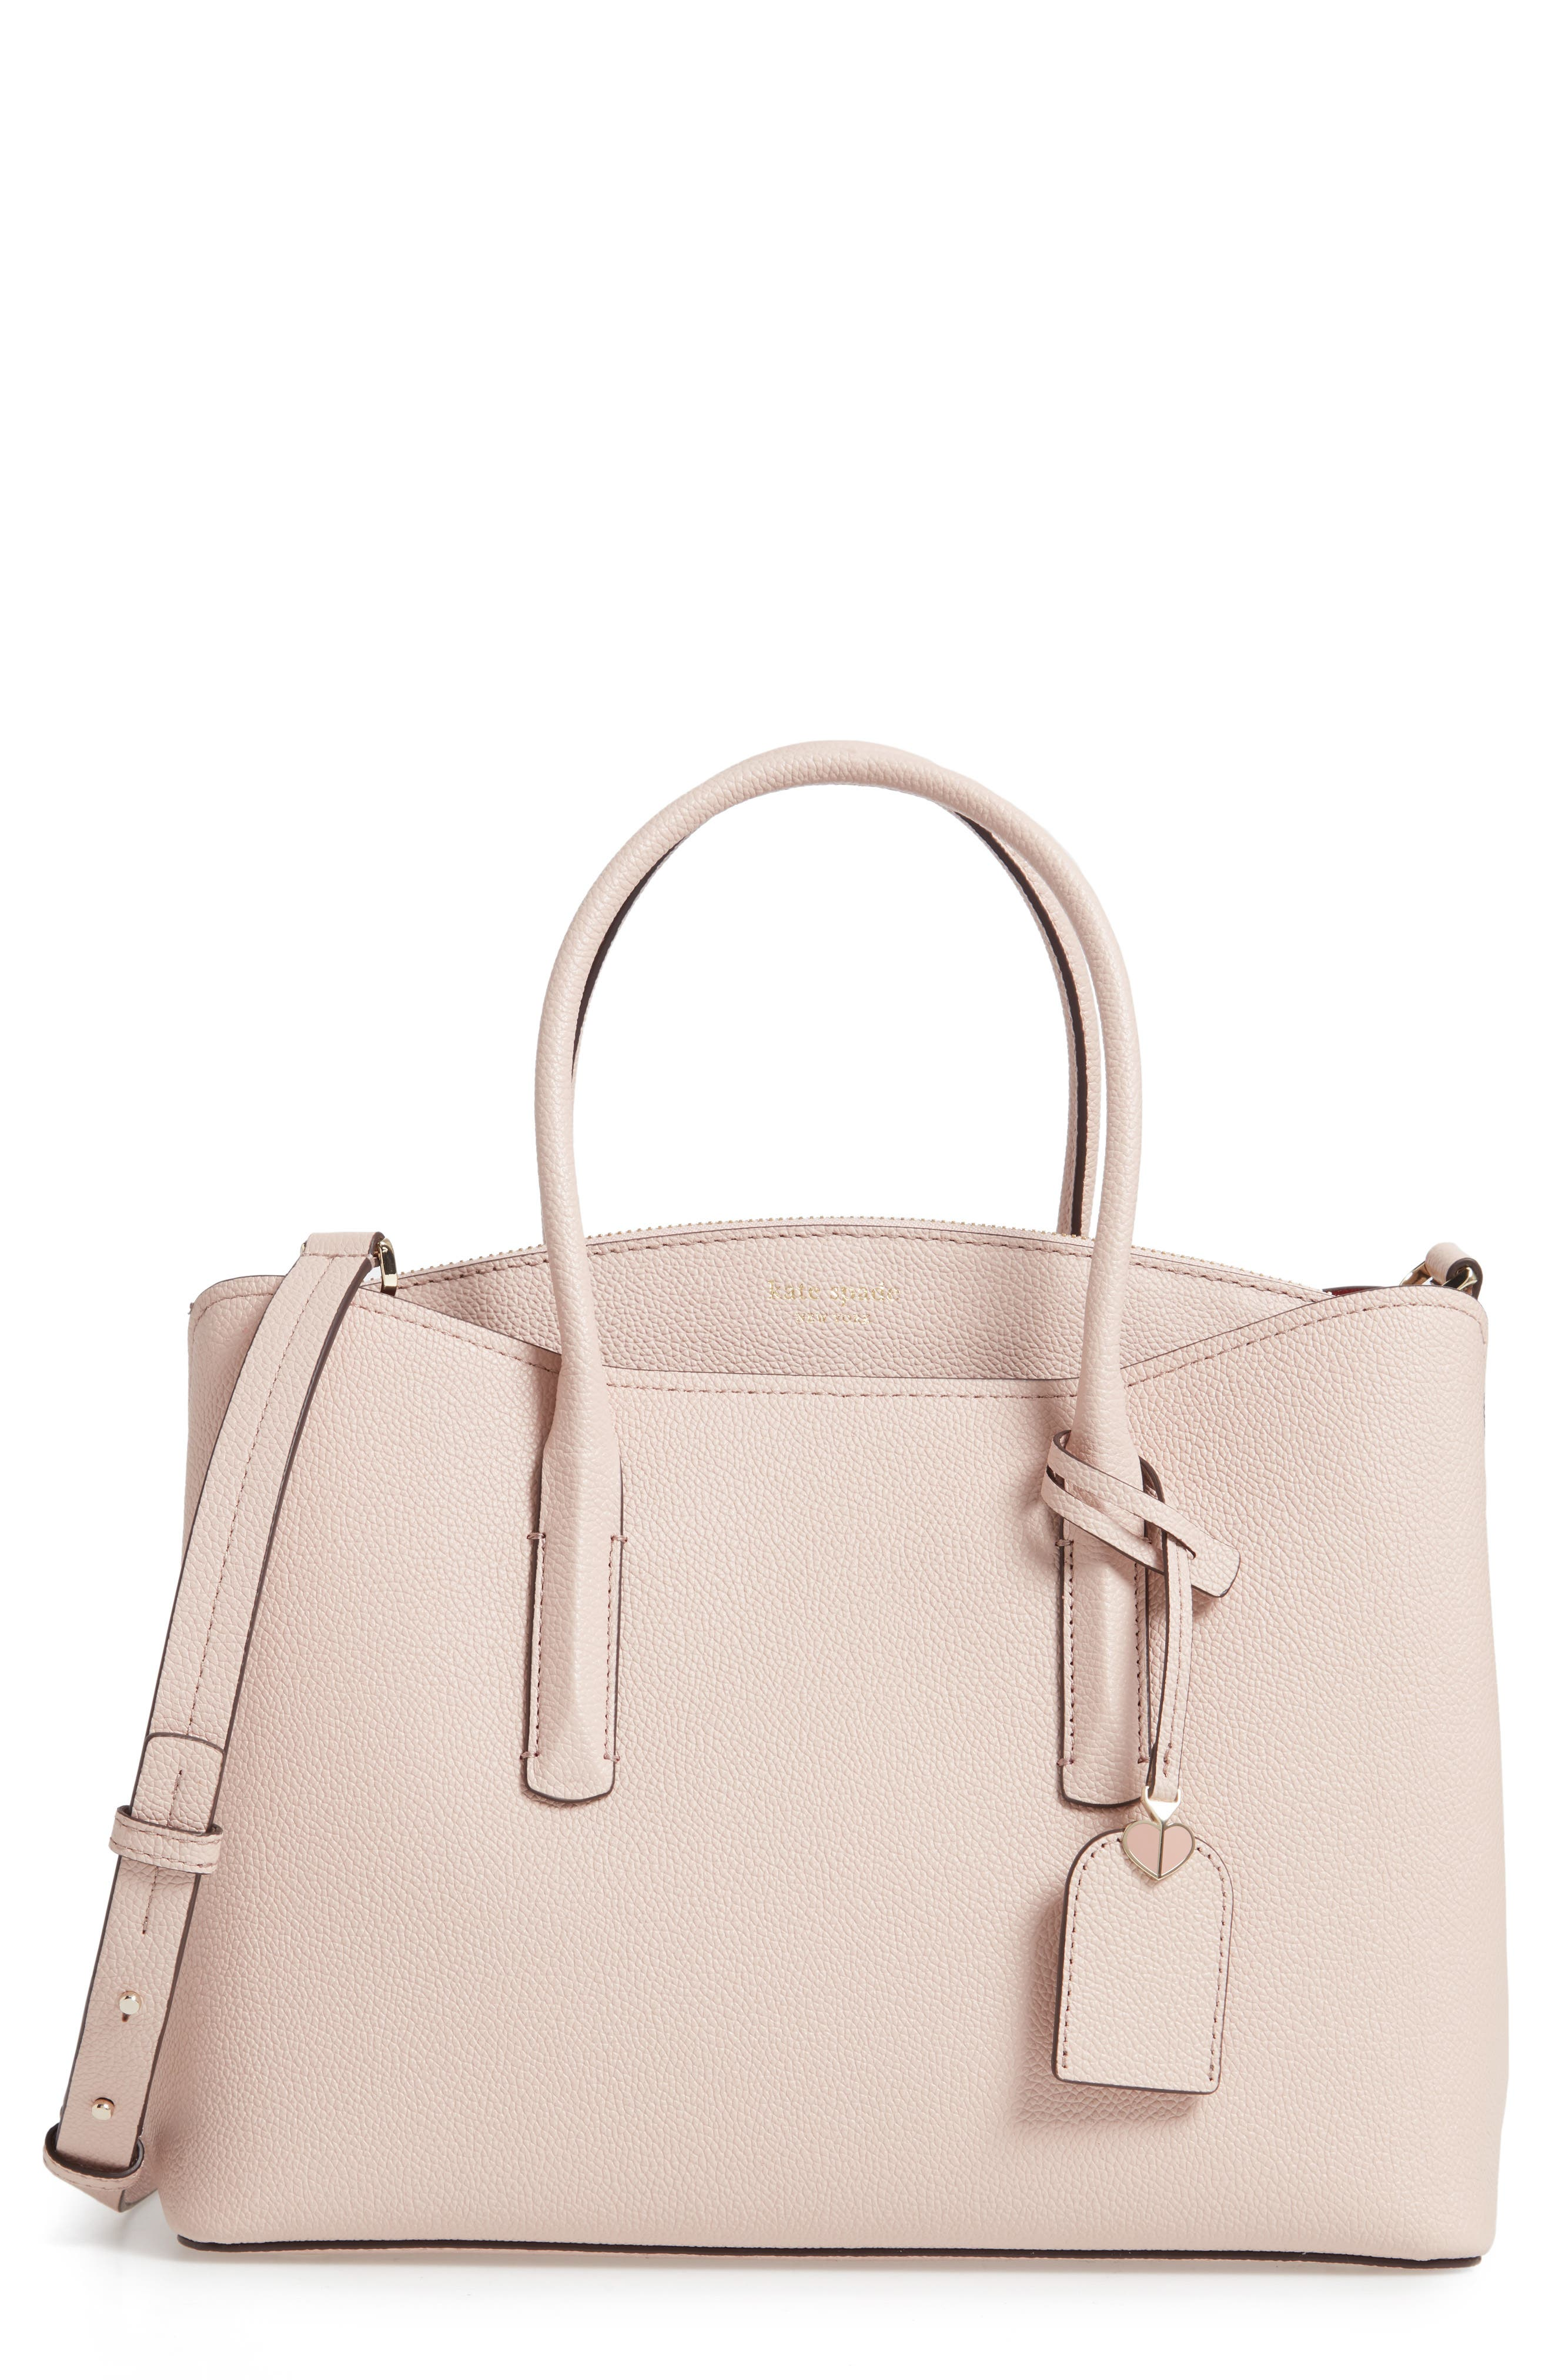 Large Margaux Leather Satchel - Pink in Pale Vellum